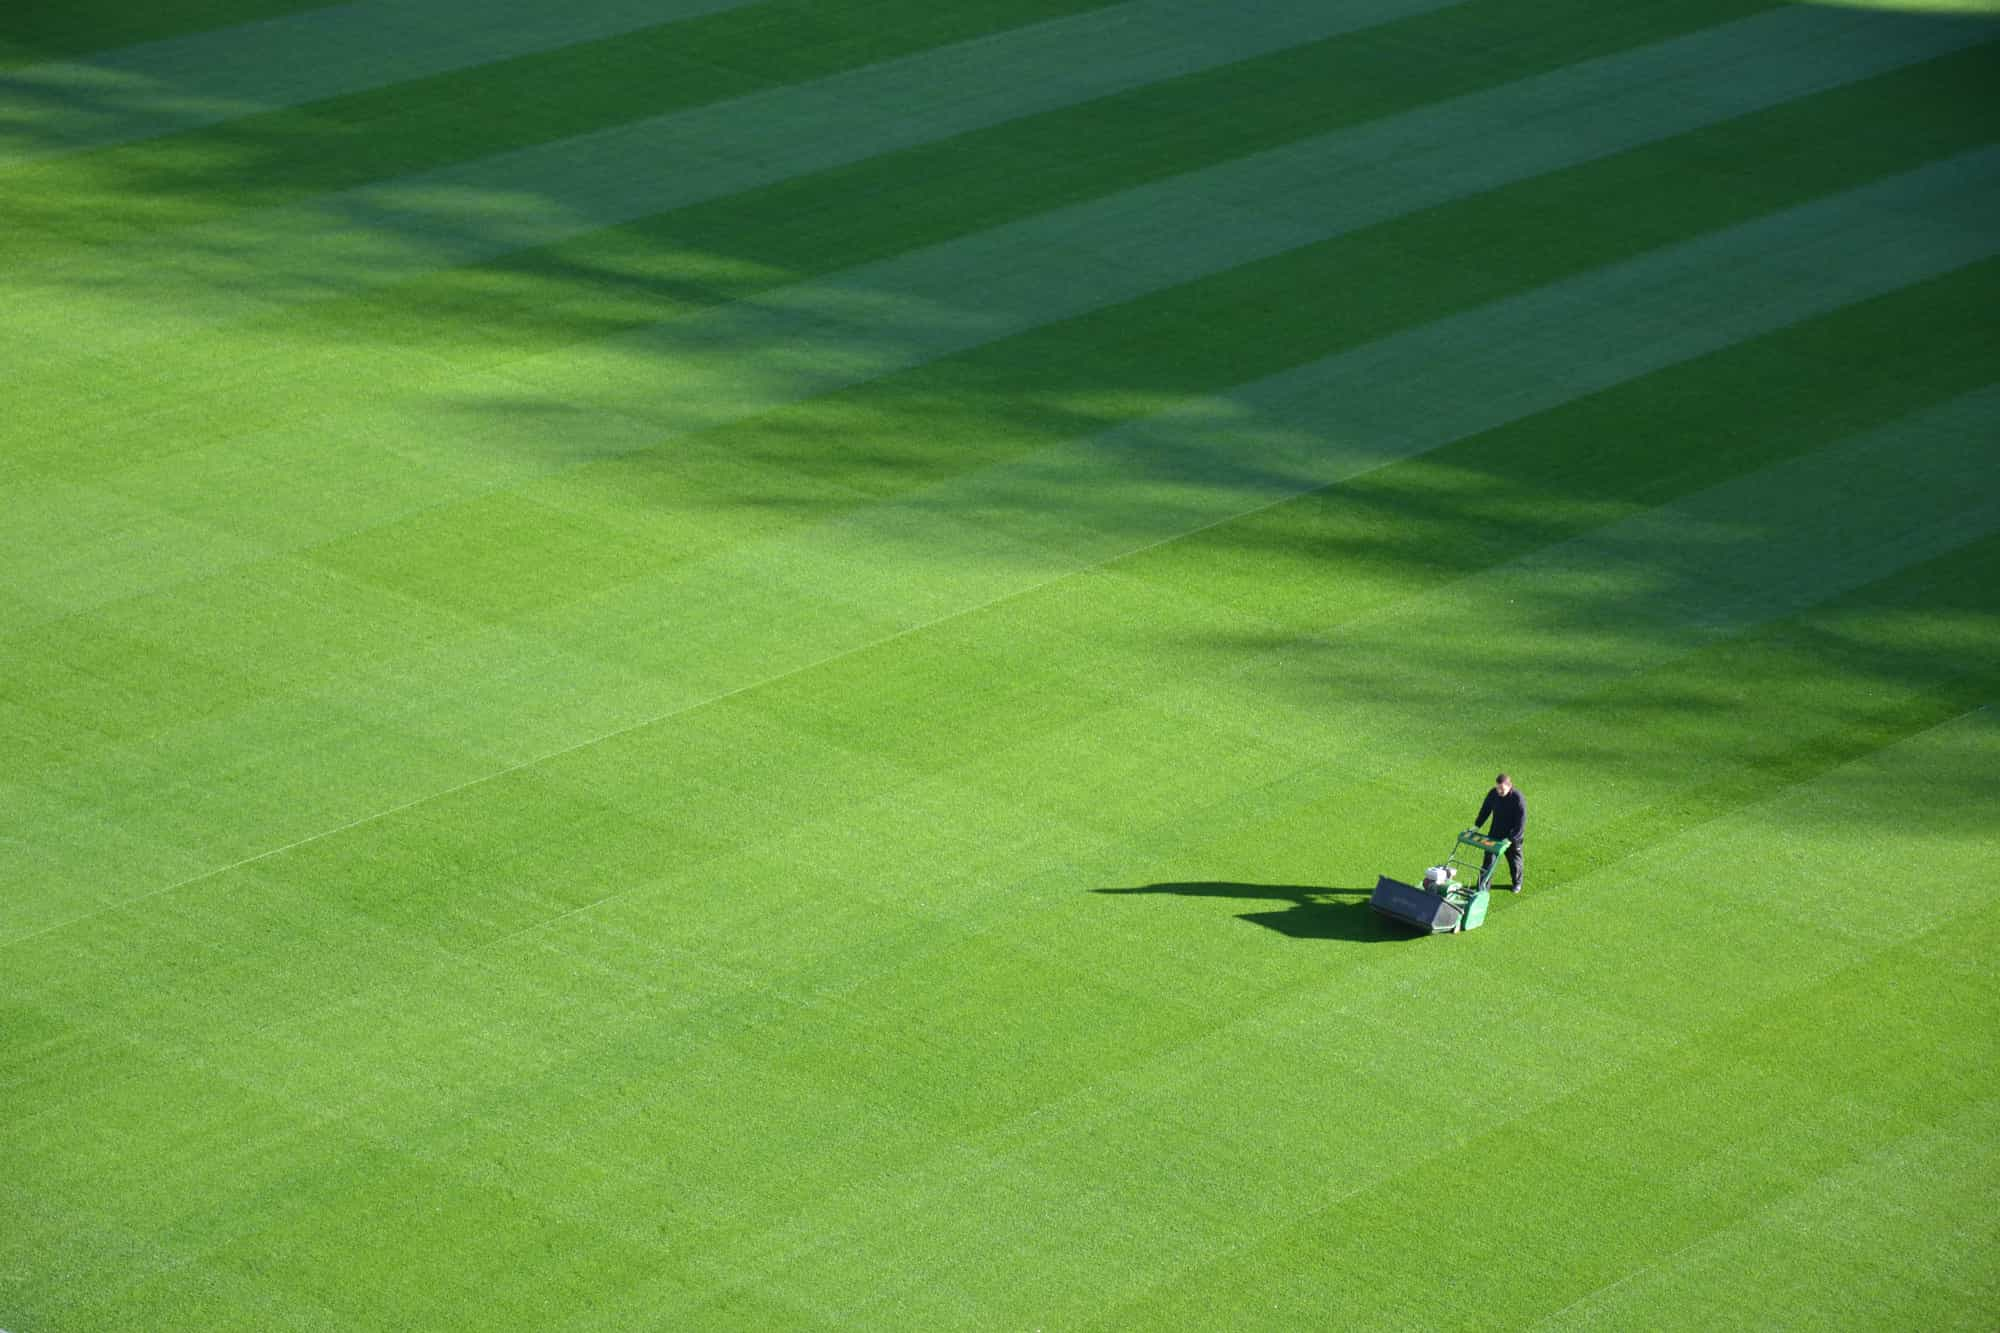 man using a lawn mower on a field